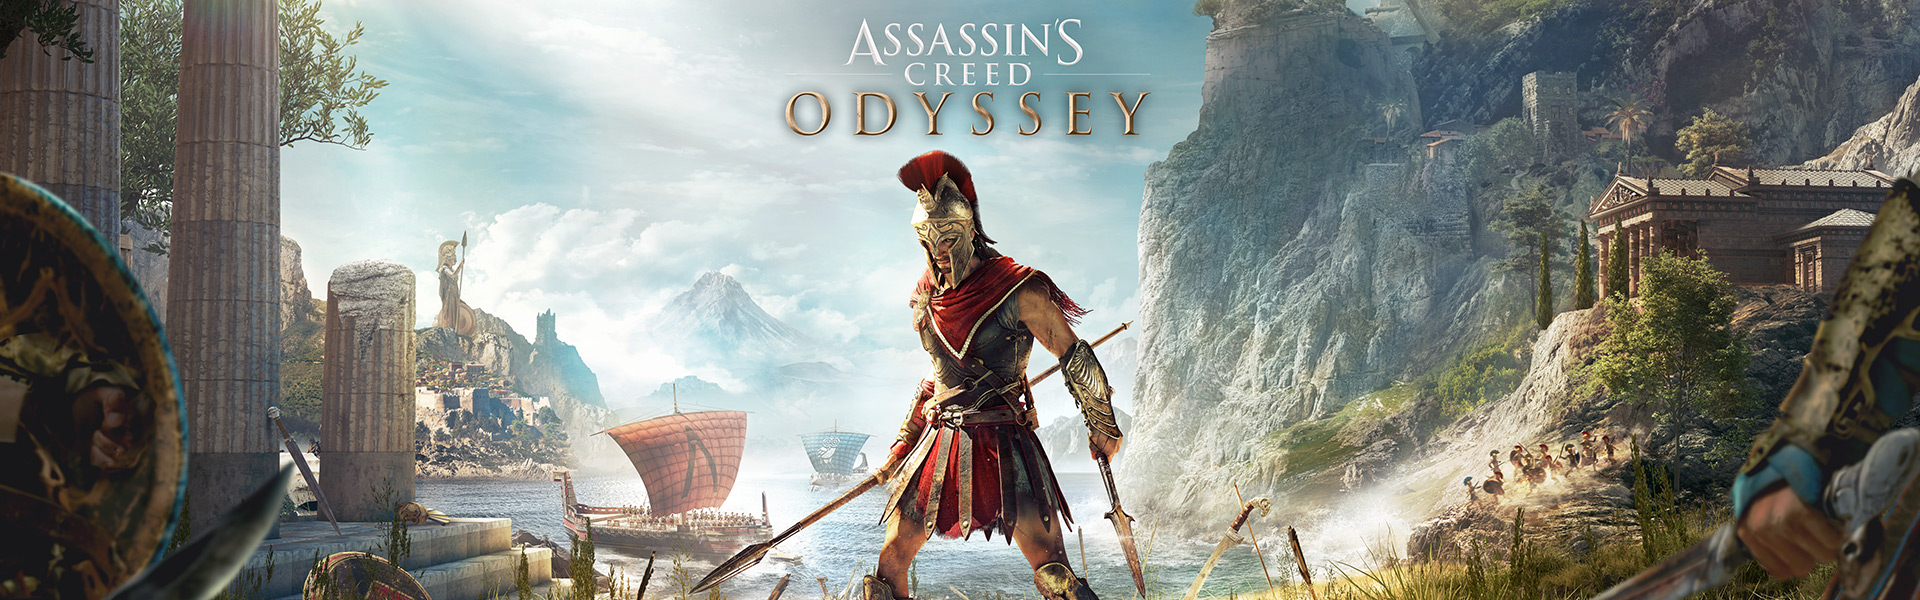 Assassin-s creed odyssey clipart graphic royalty free download Assassin\'s Creed® Odyssey for Xbox One | Xbox graphic royalty free download